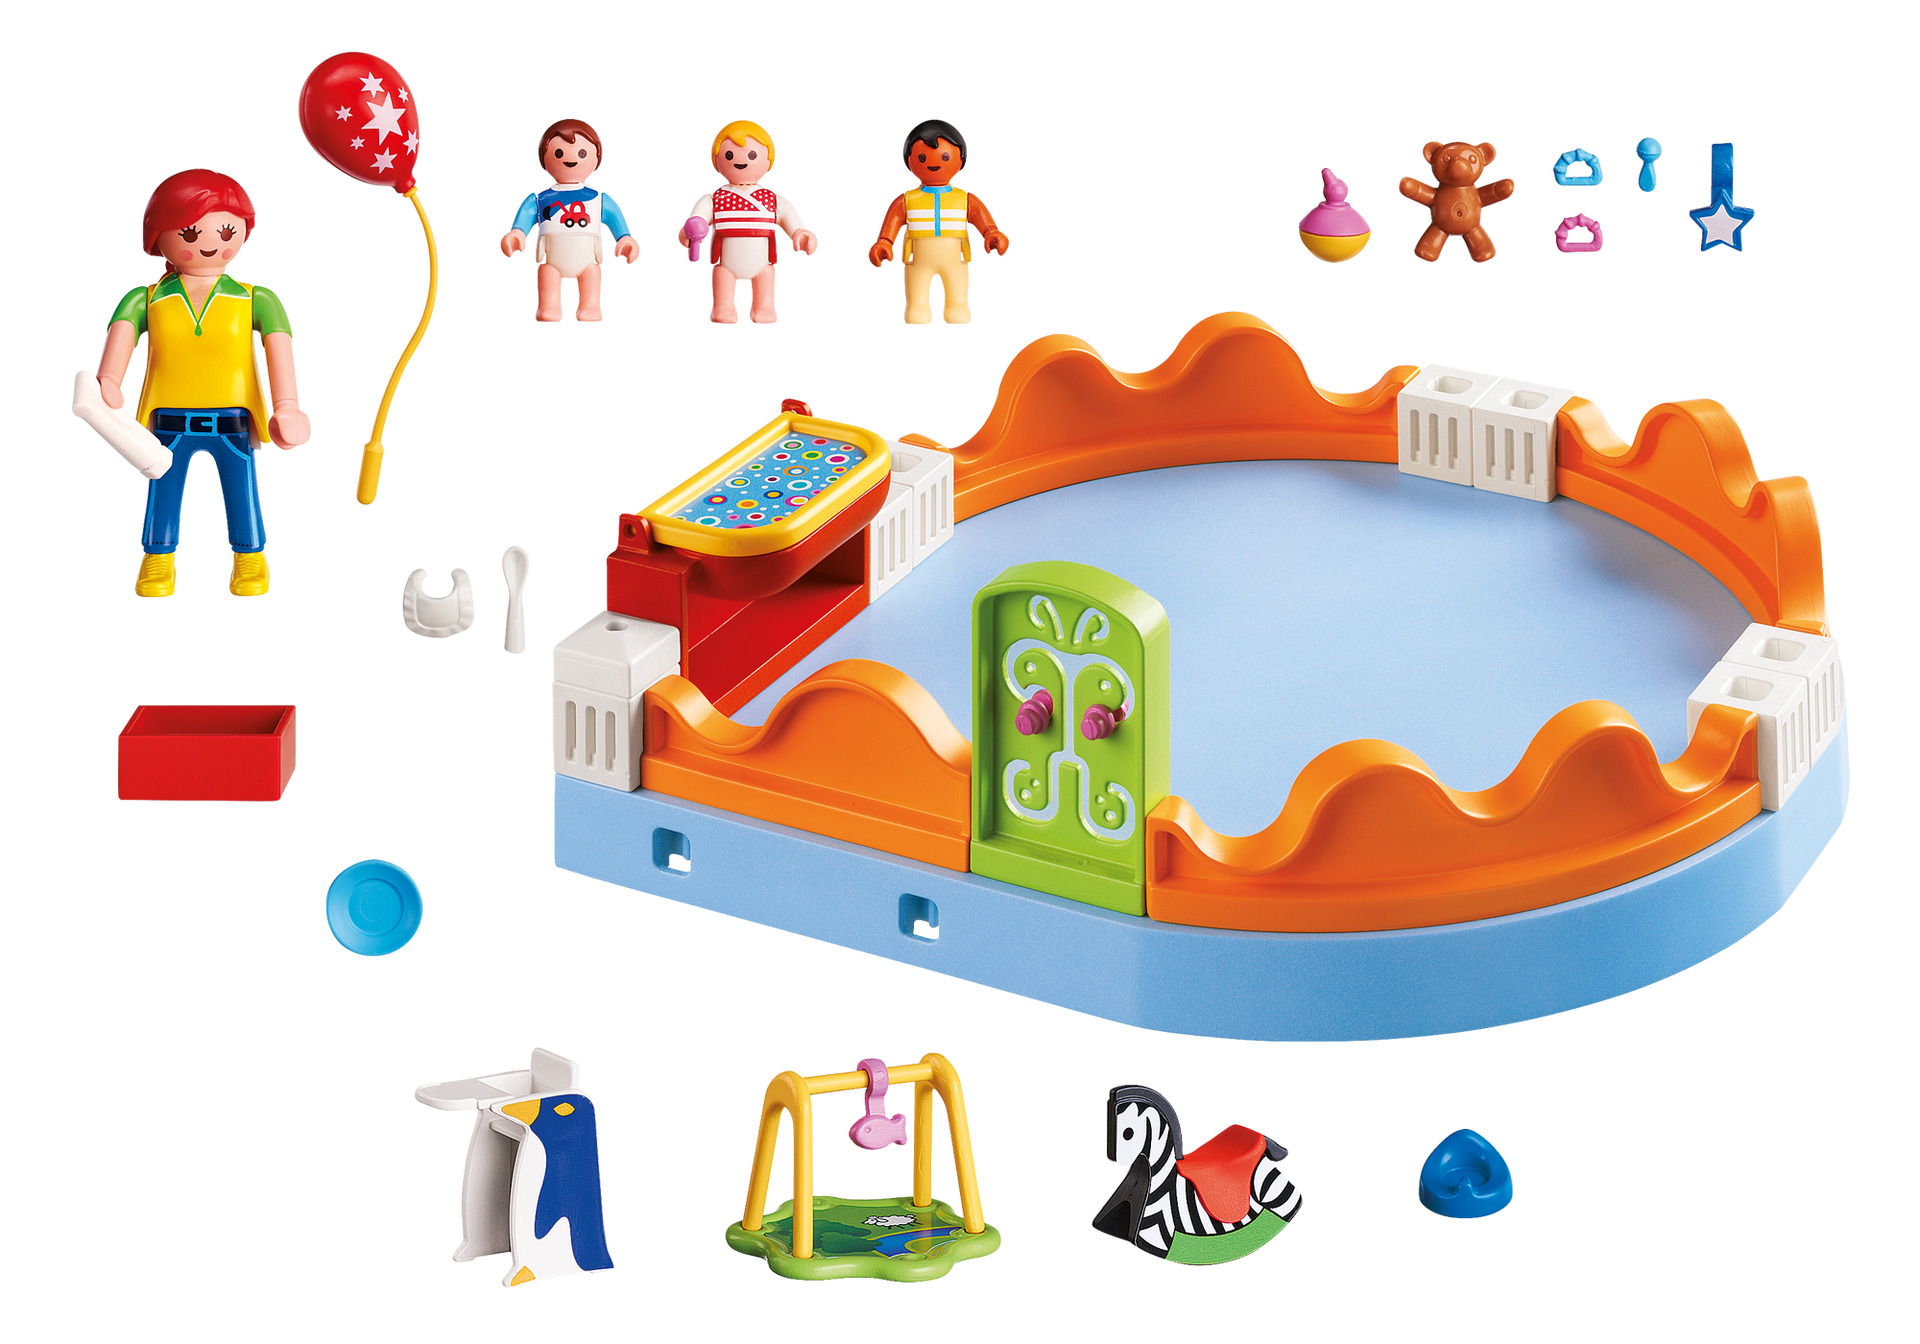 Car play mat clipart vector transparent stock Playgroup - 5570 - PLAYMOBIL® United Kingdom vector transparent stock